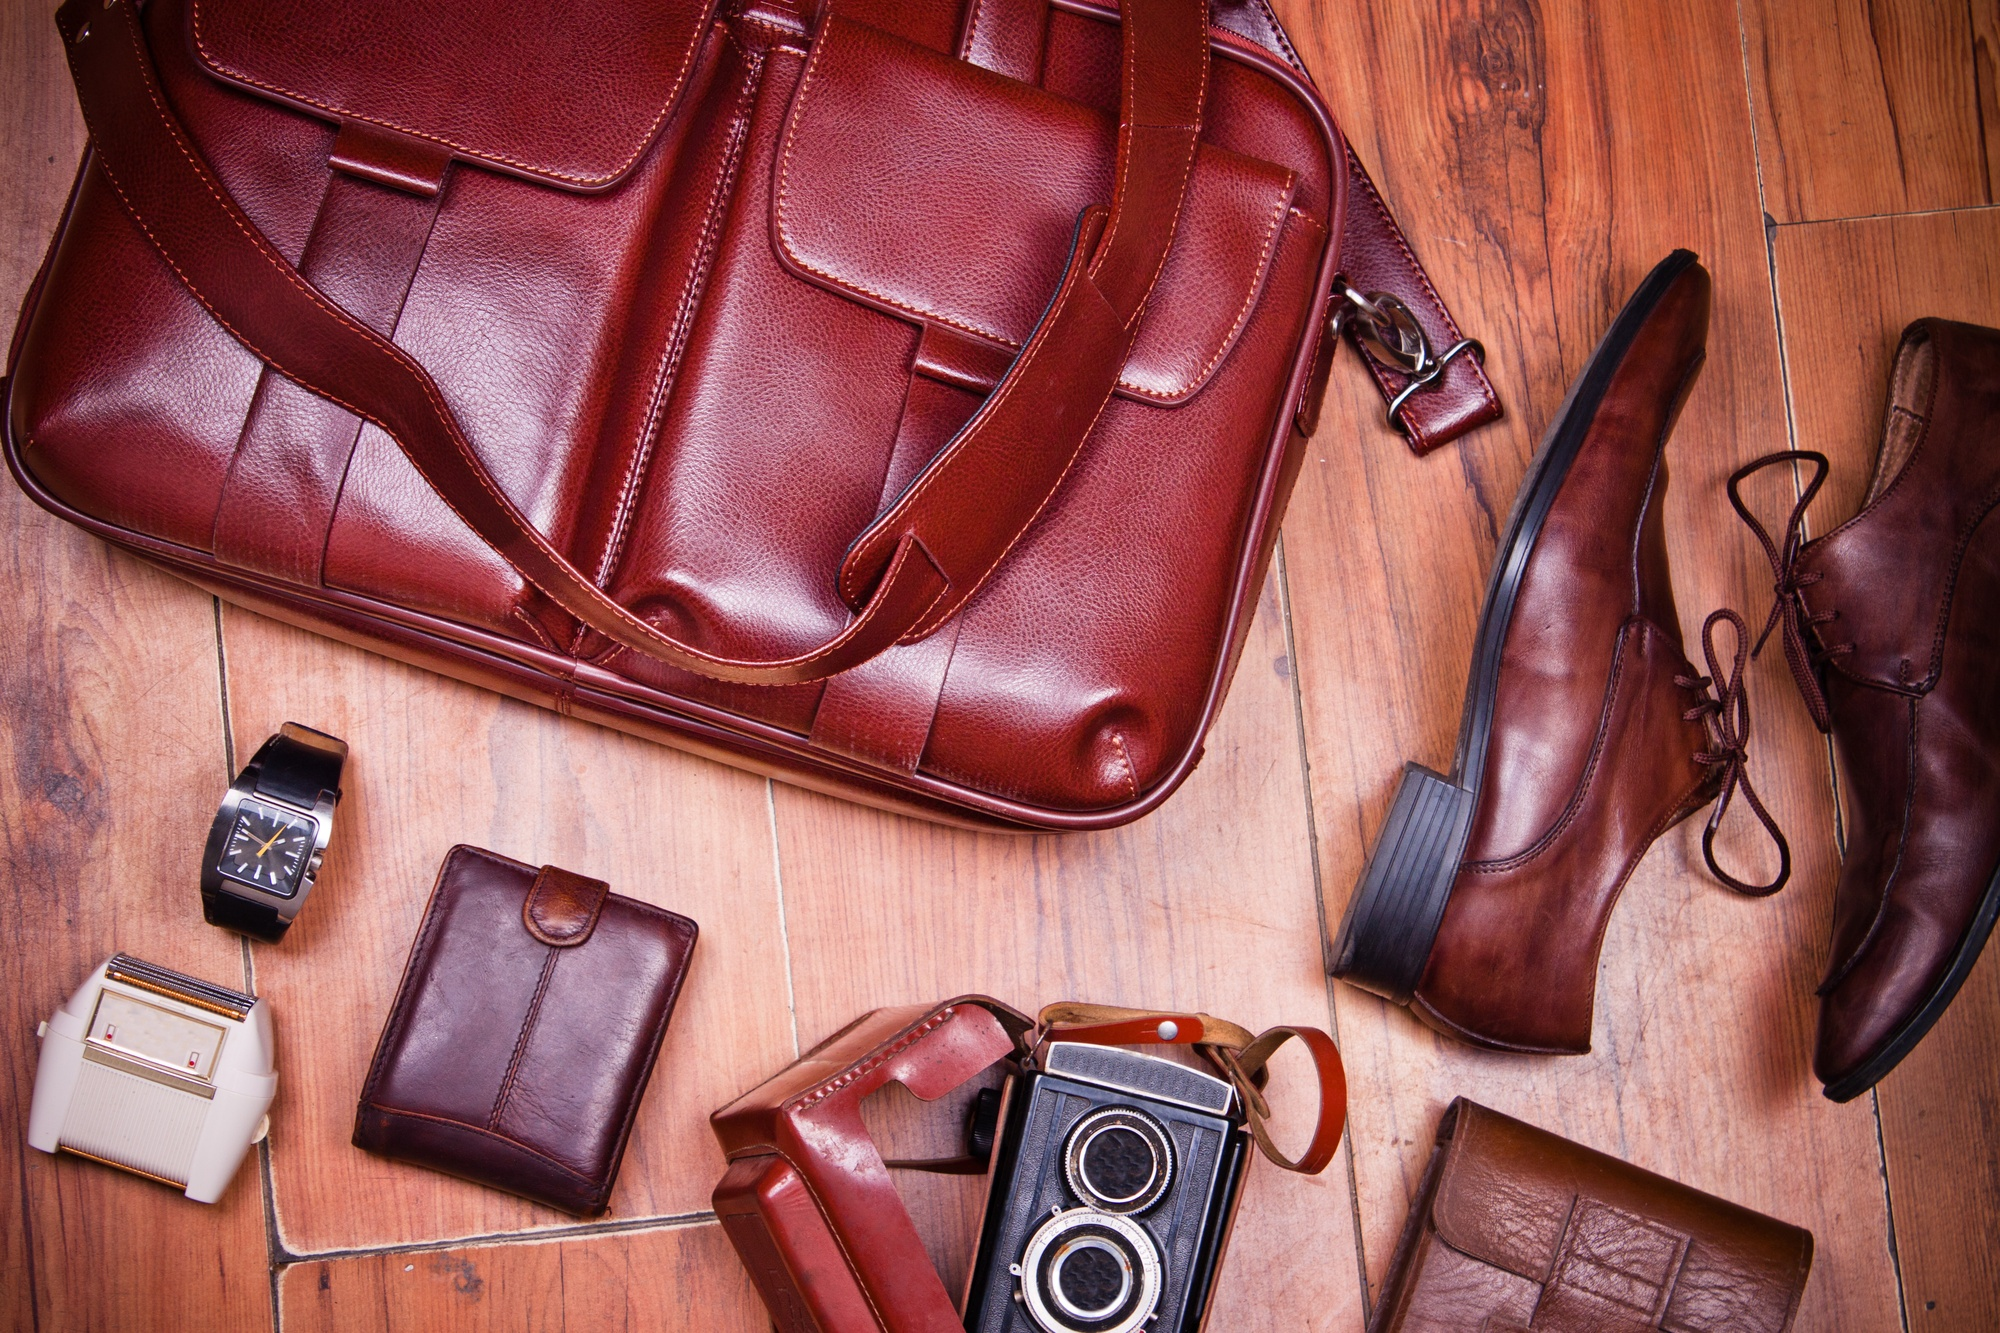 Men's Fashion Essentials: 16 Things Every Man Should Have in His Closet